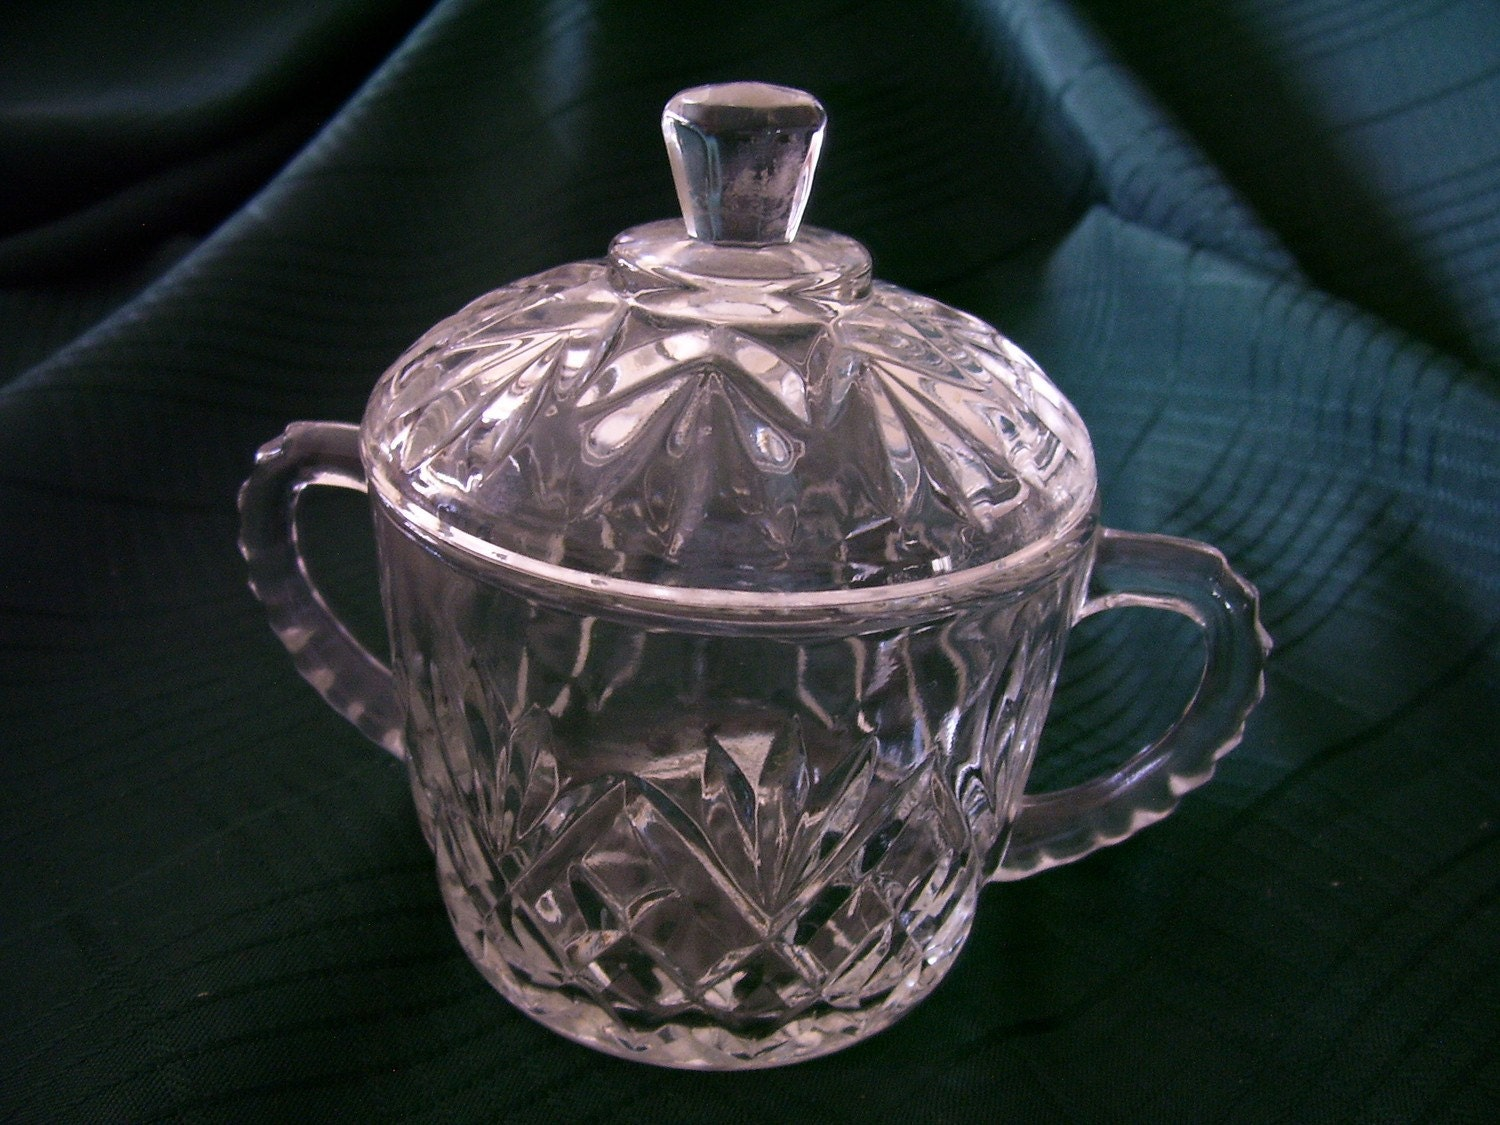 Crystal Anchor Hocking Sugar Bowl With Lid In By